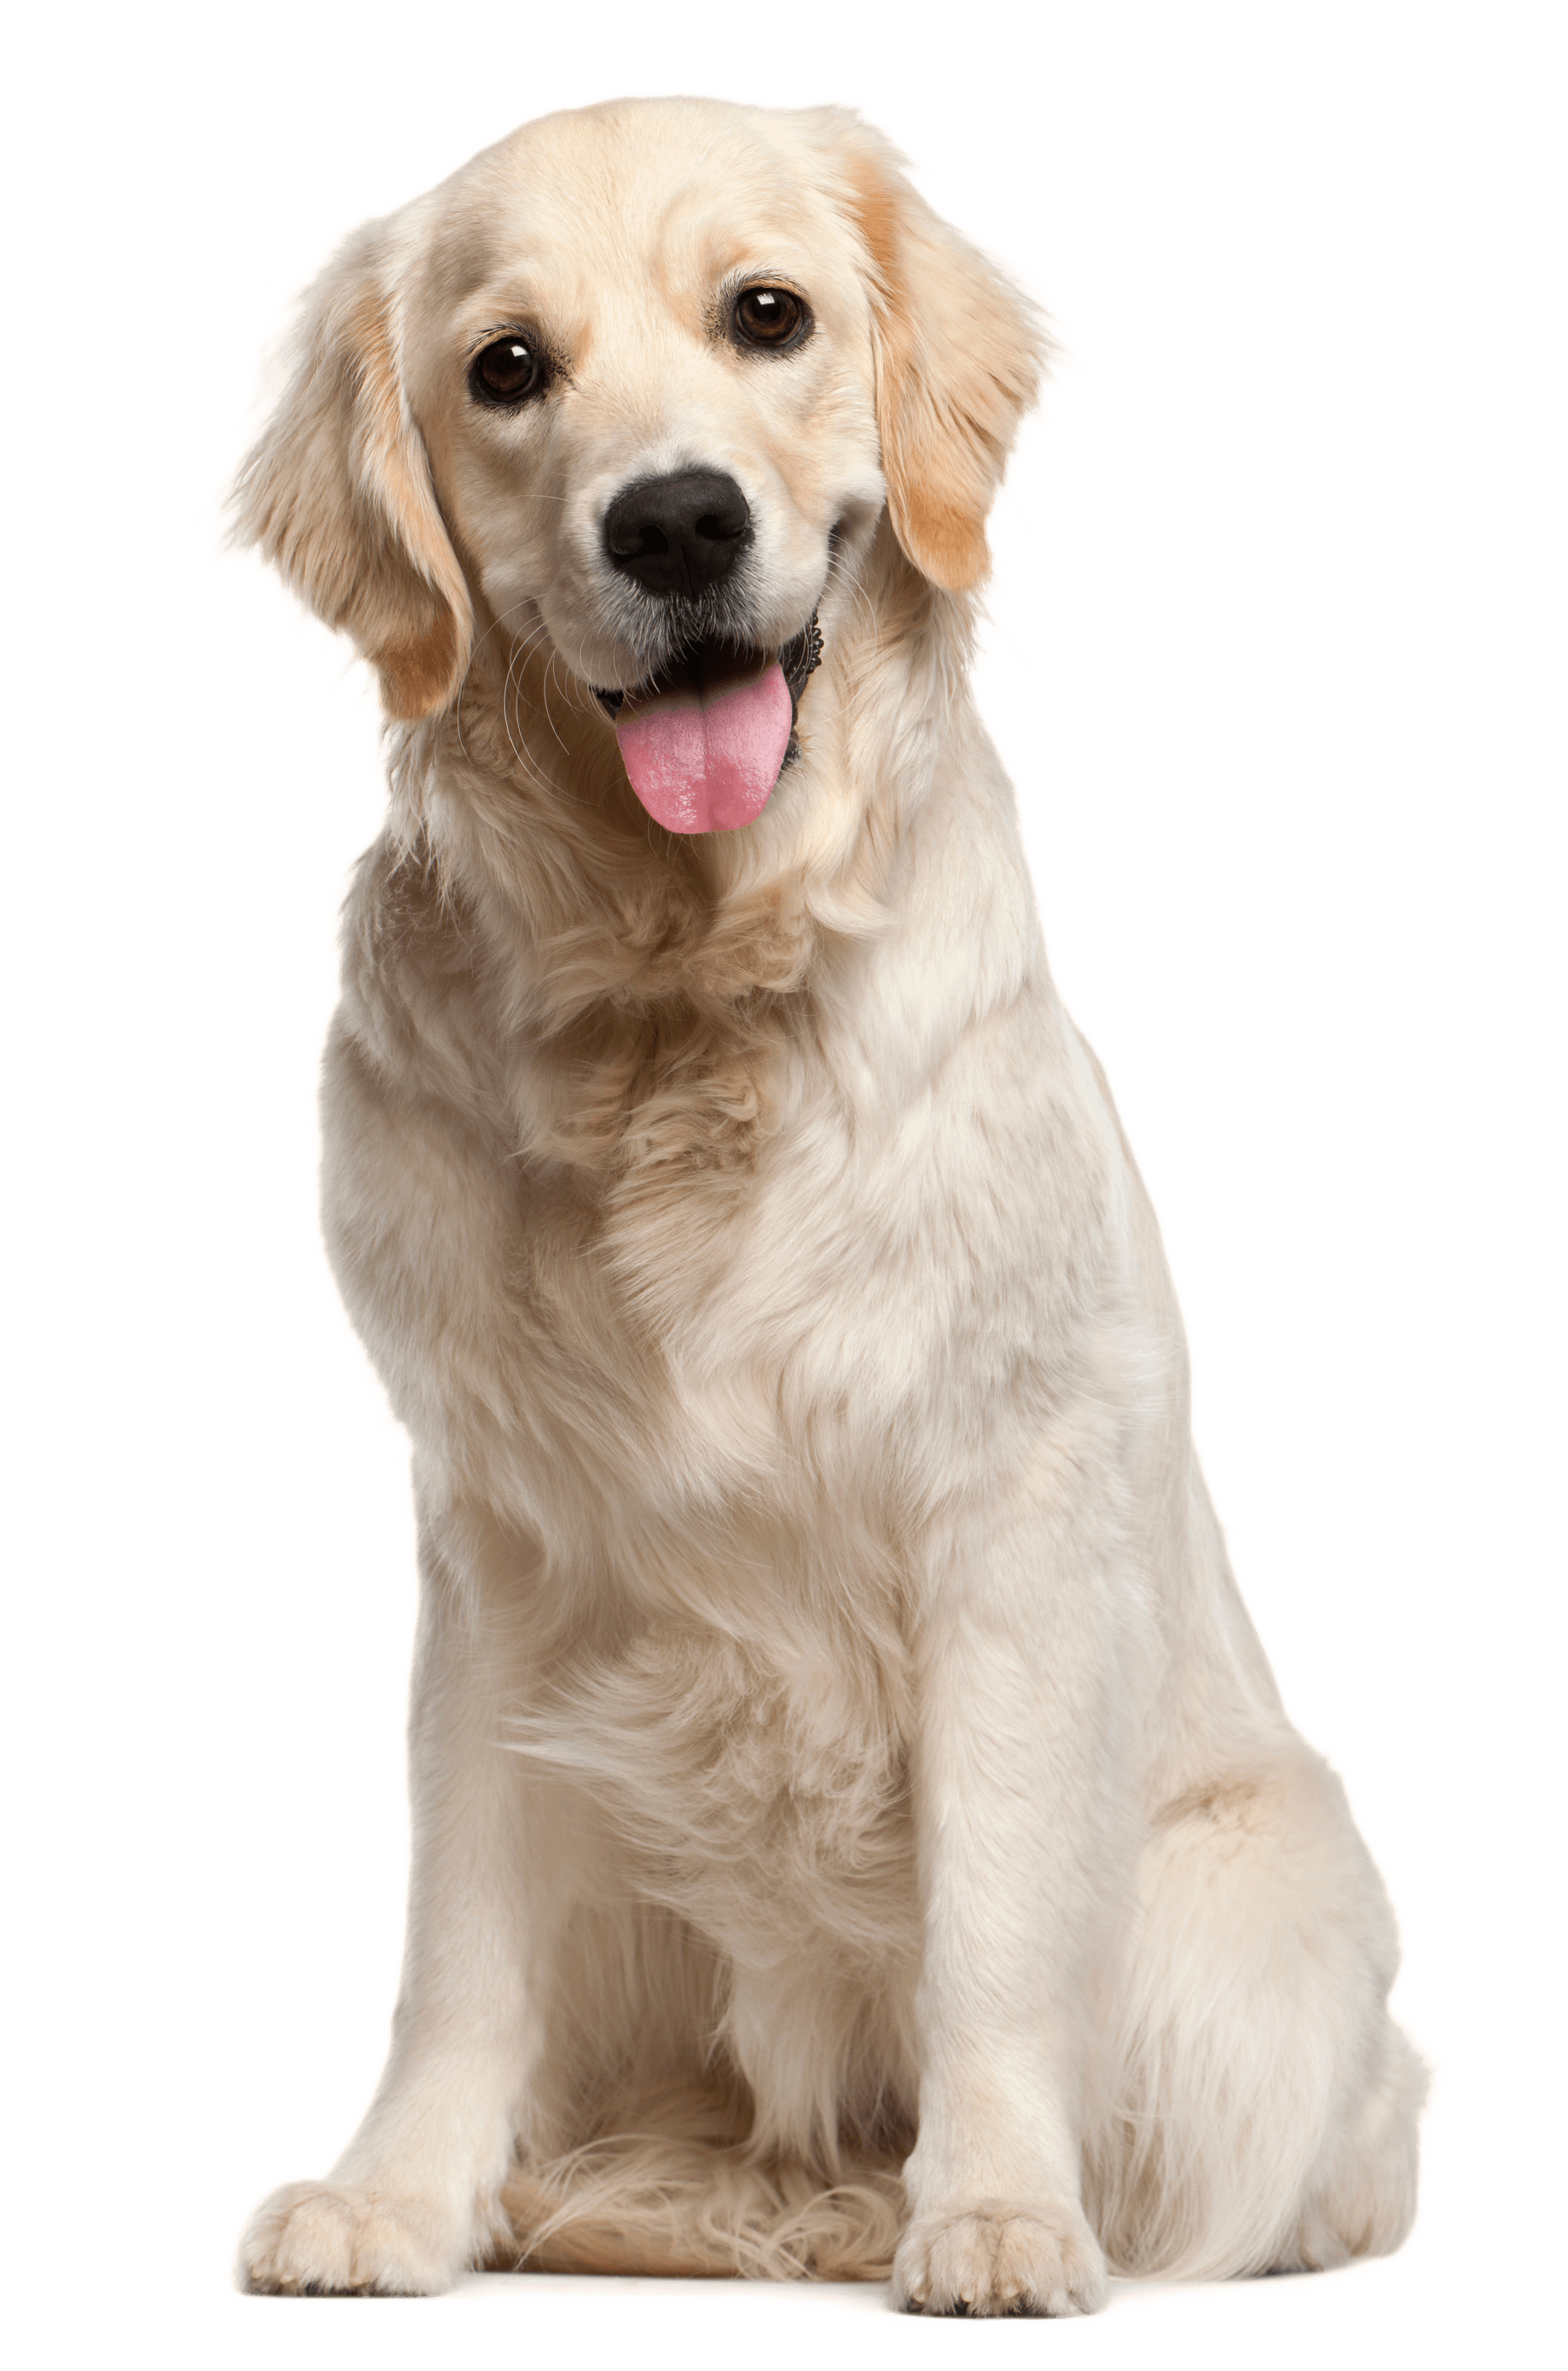 kisspng-dog-grooming-puppy-cat-pet-white-dog-5a70ac435552b0.5161753115173335713495.png